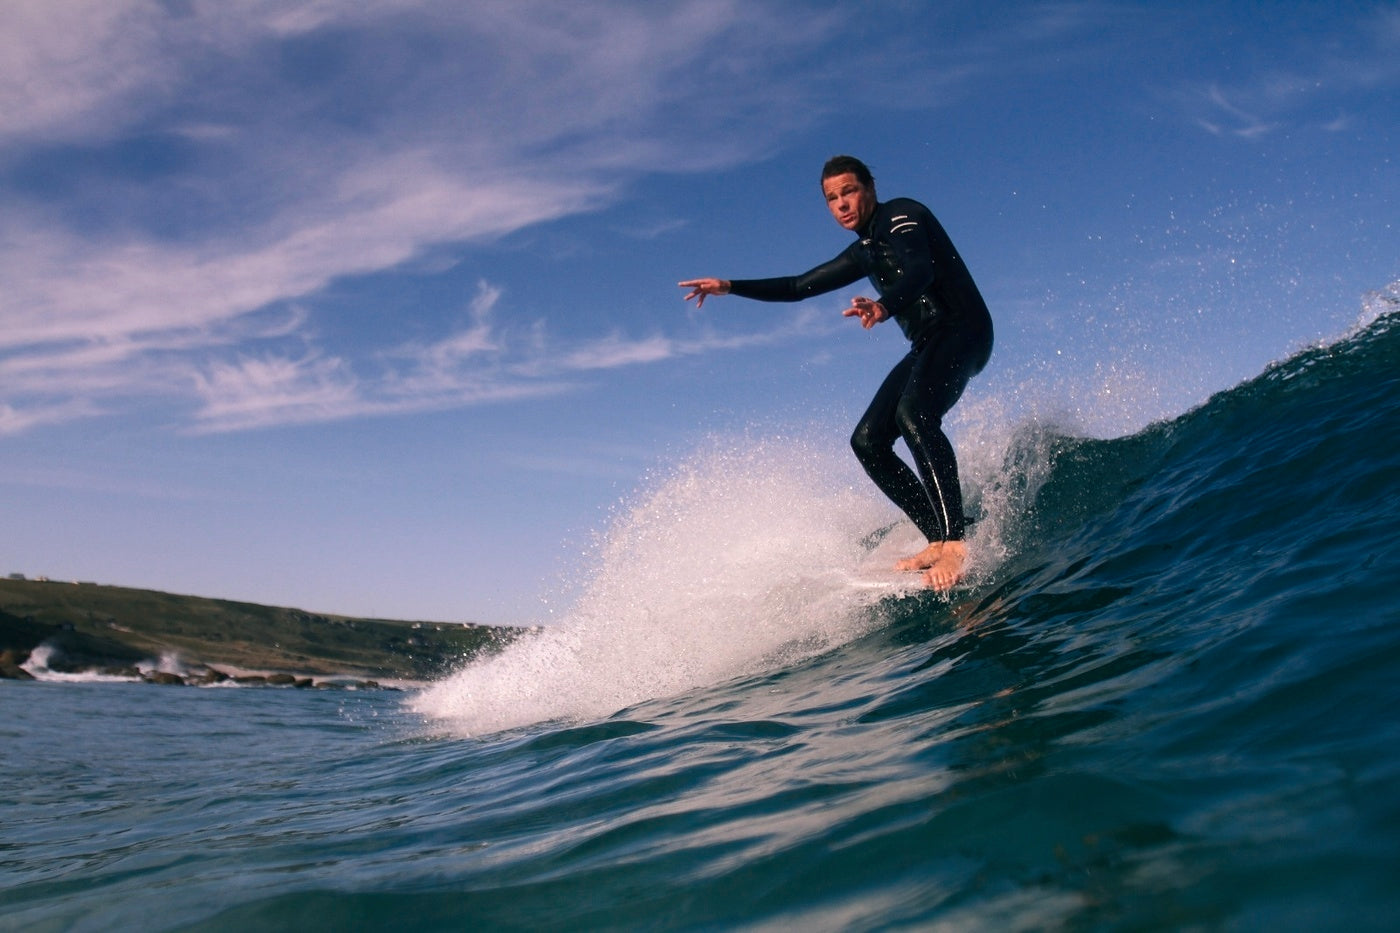 Sam Bleakley hanging five on the crest of a wave at his local break